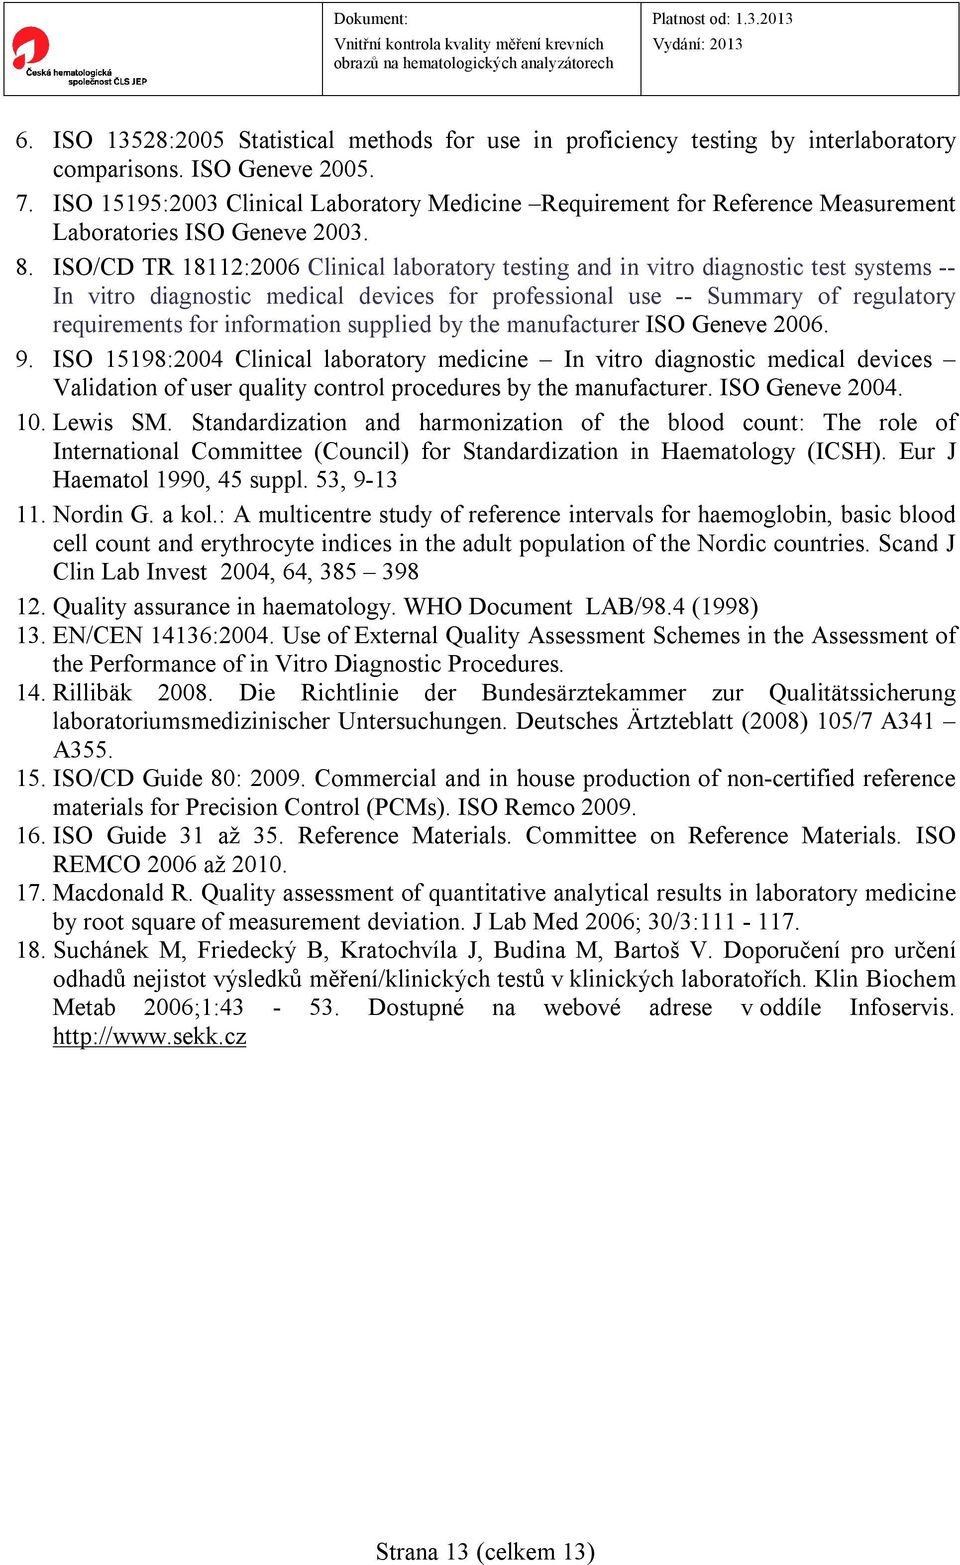 ISO/CD TR 18112:2006 Clinical laboratory testing and in vitro diagnostic test systems -- In vitro diagnostic medical devices for professional use -- Summary of regulatory requirements for information